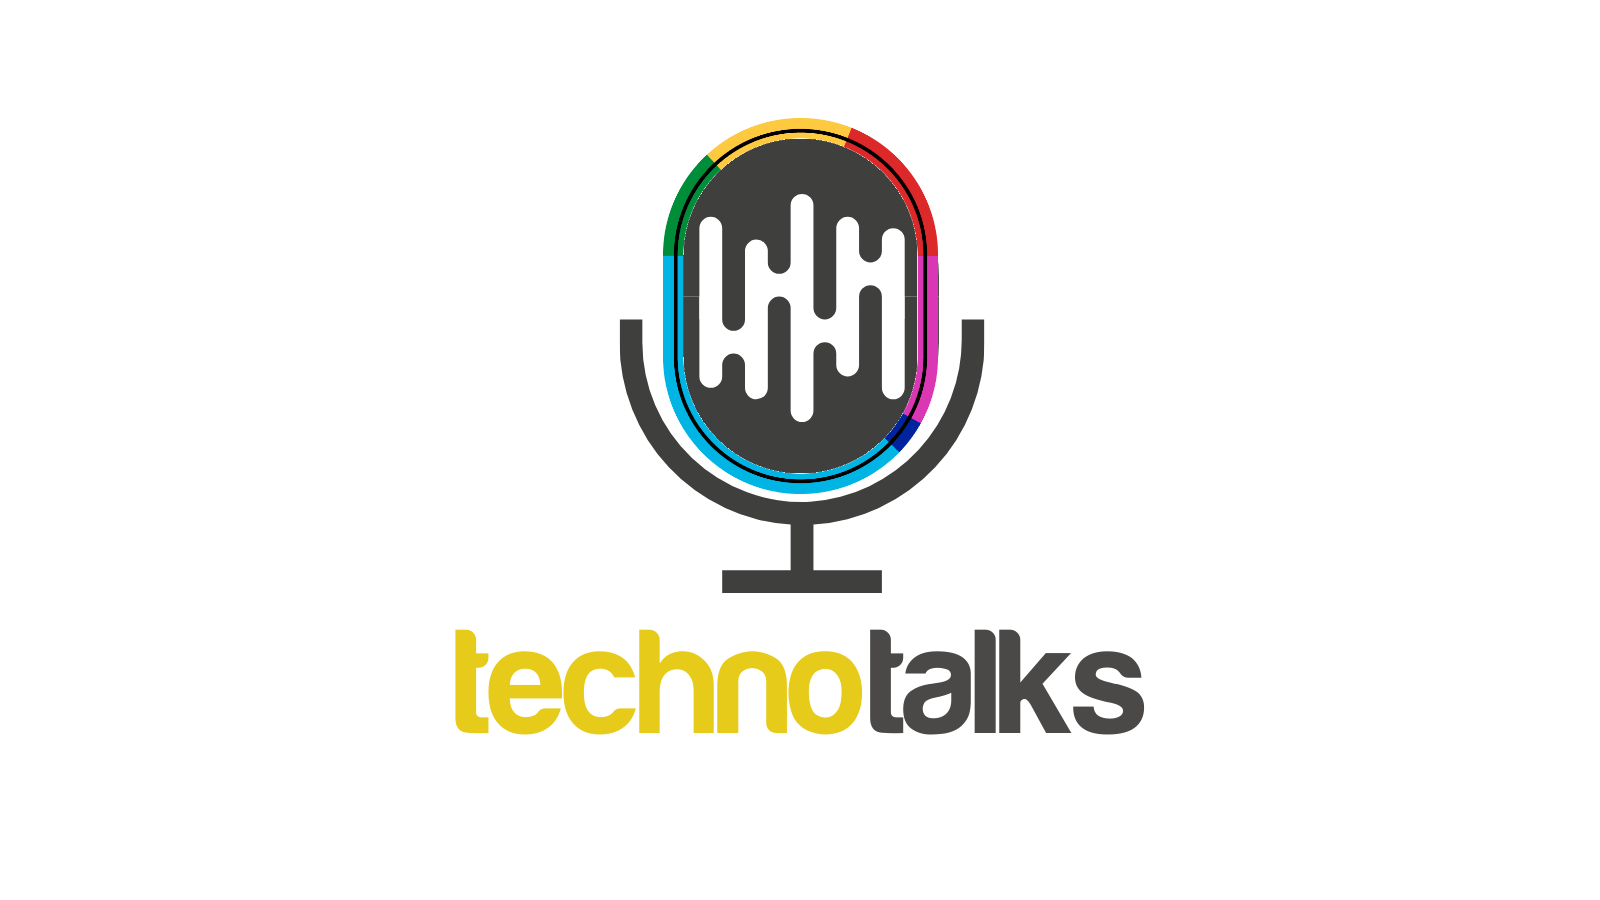 Technotalks logo